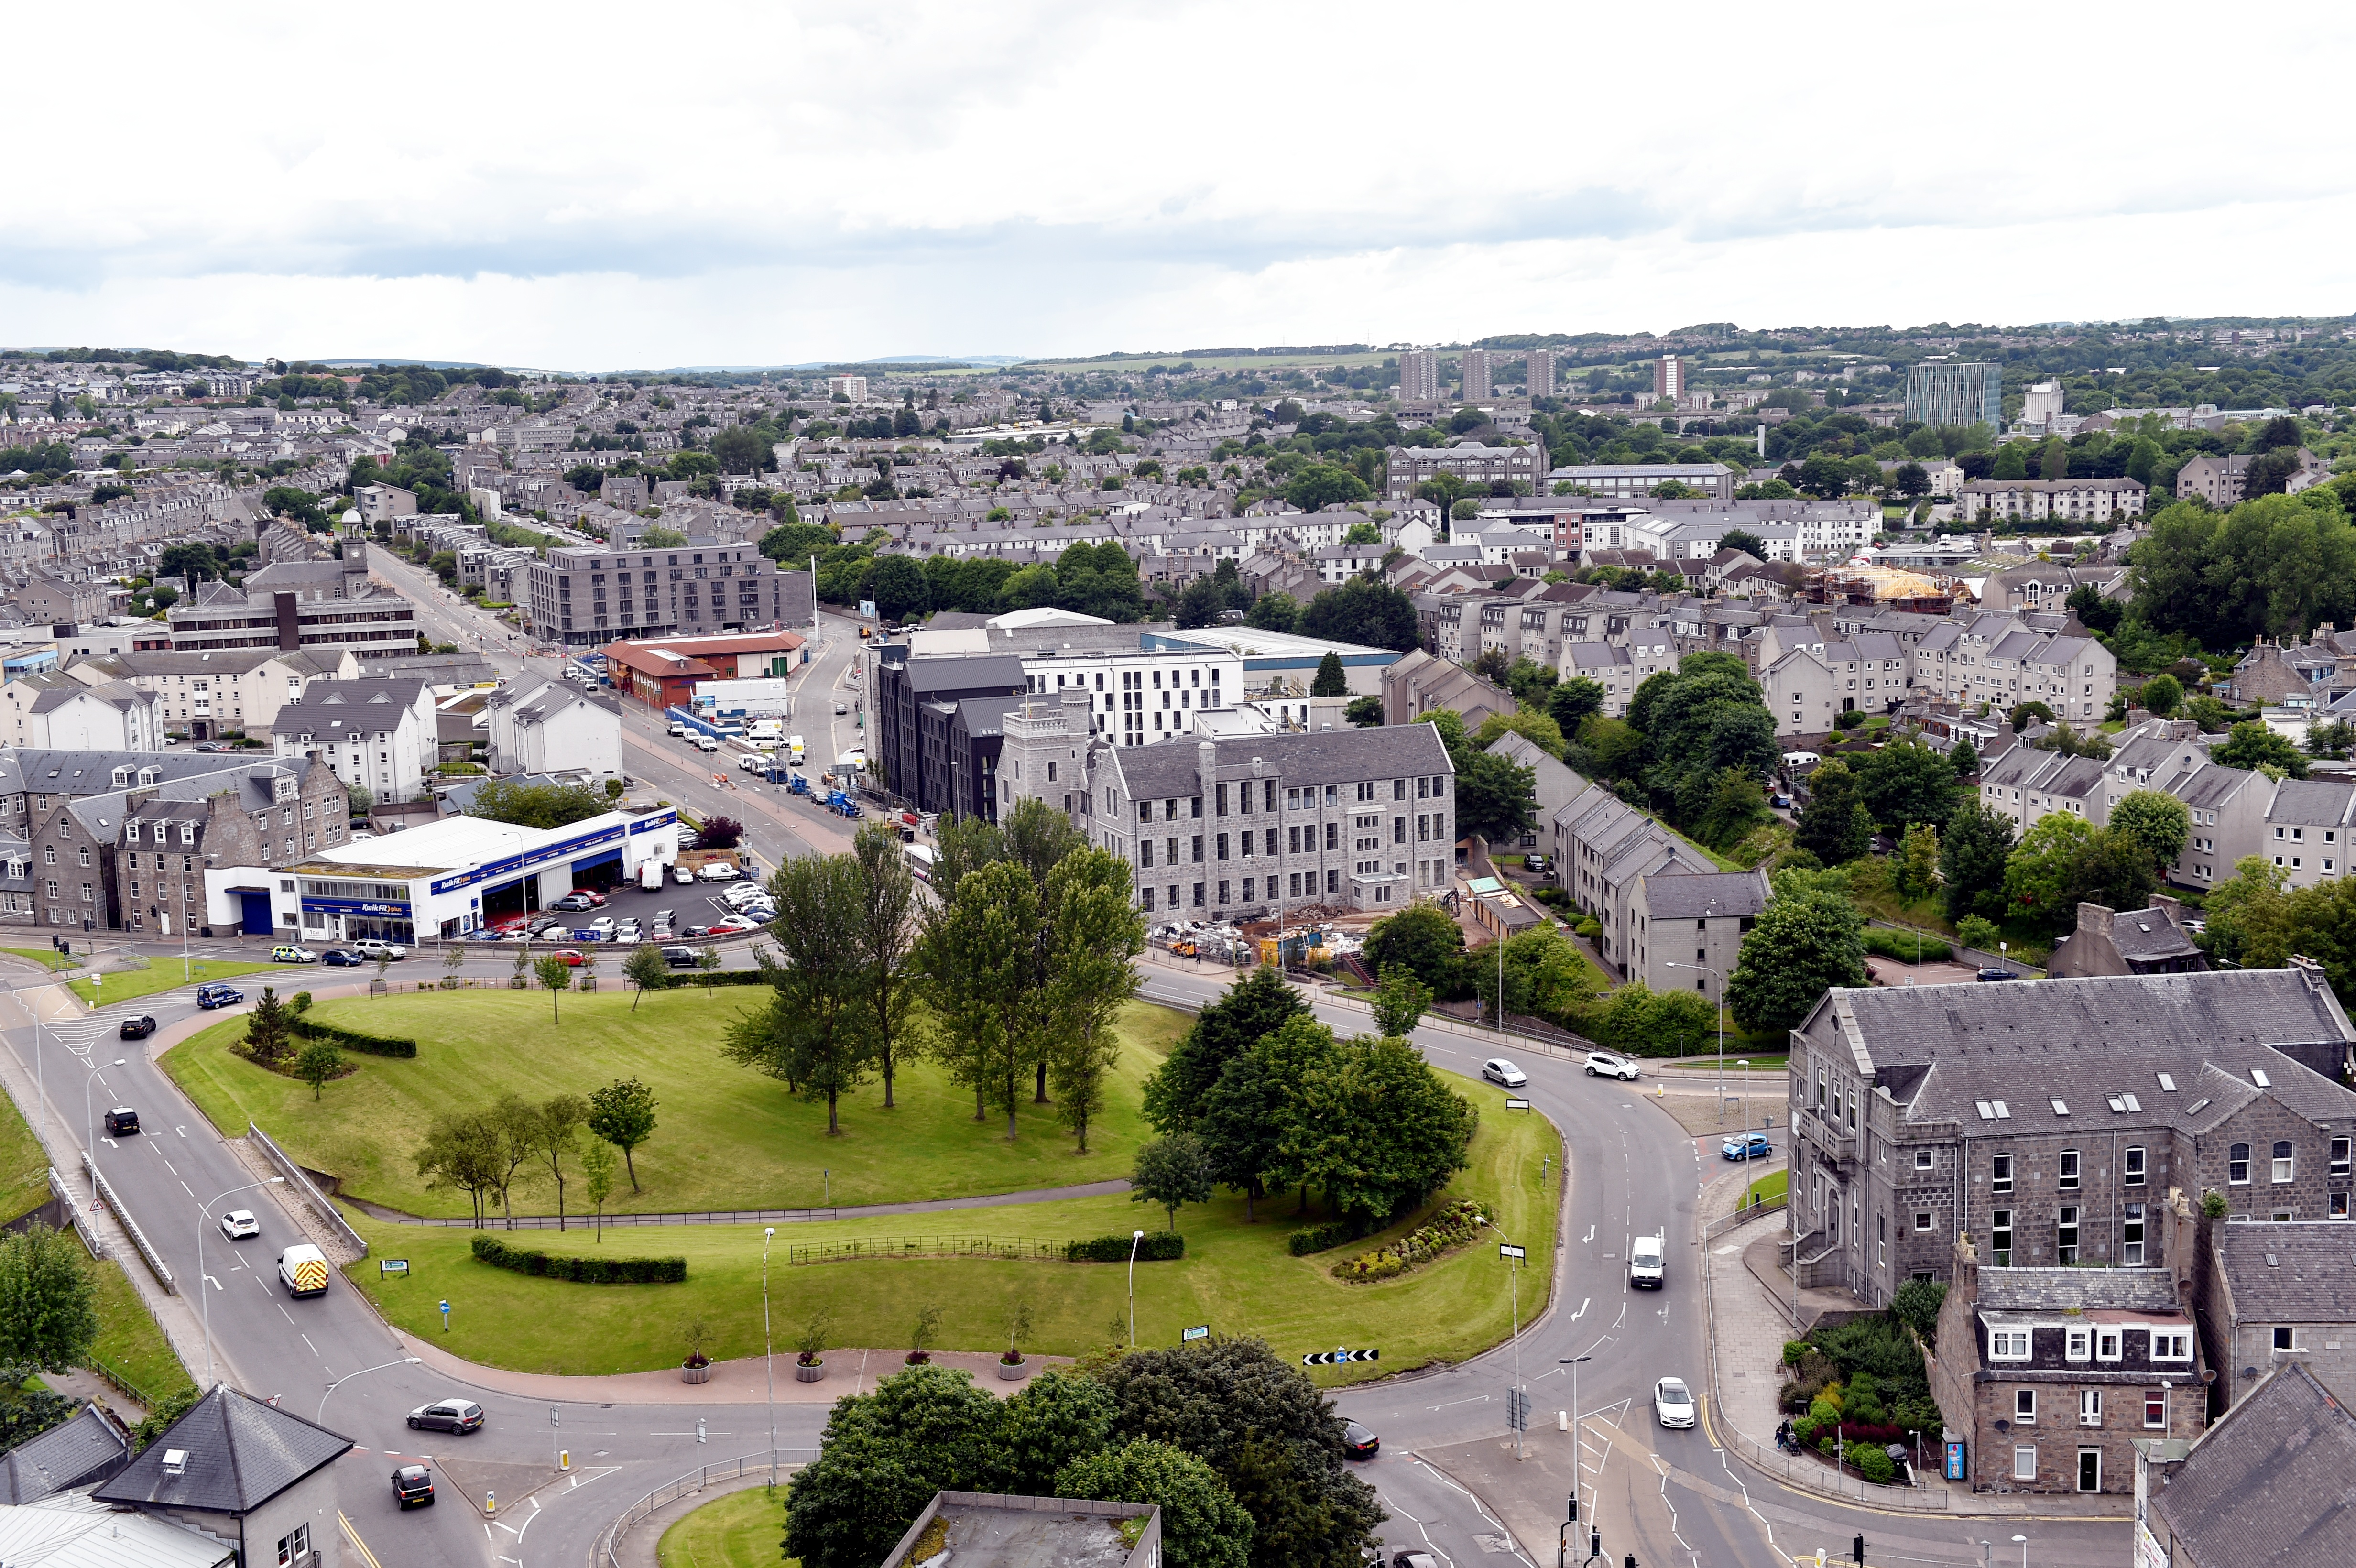 The Mounthooly roundabout in Aberdeen.